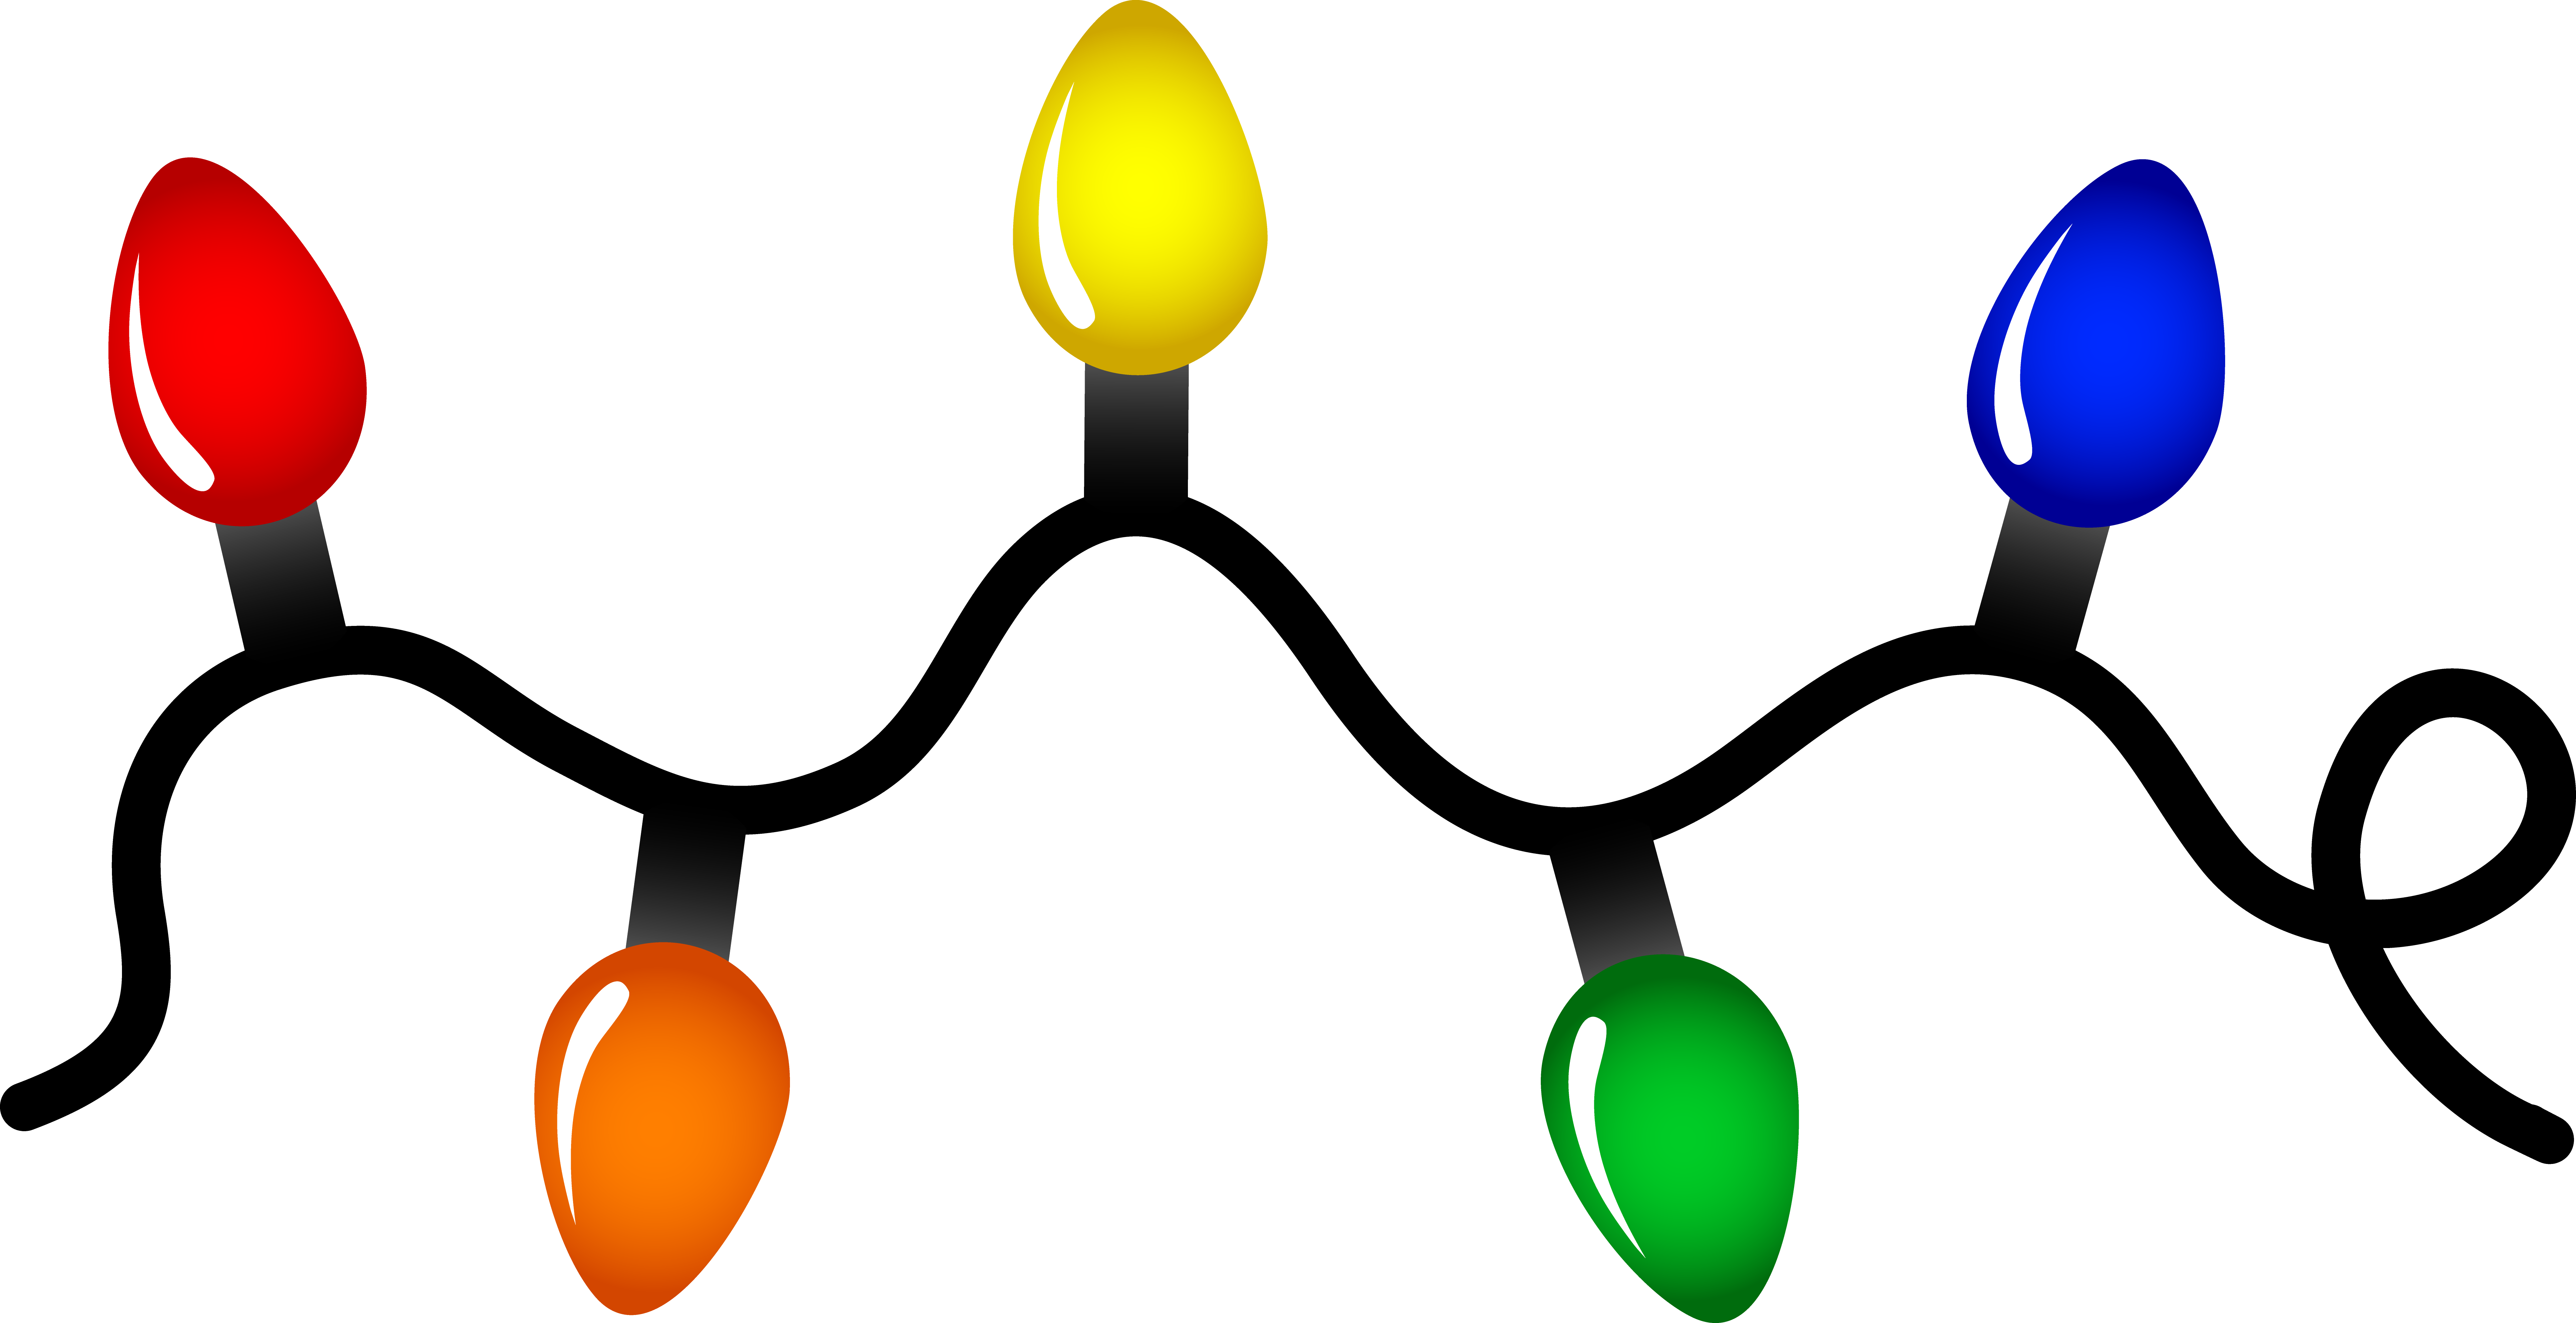 Christmas Lights clipart #3, Download drawings